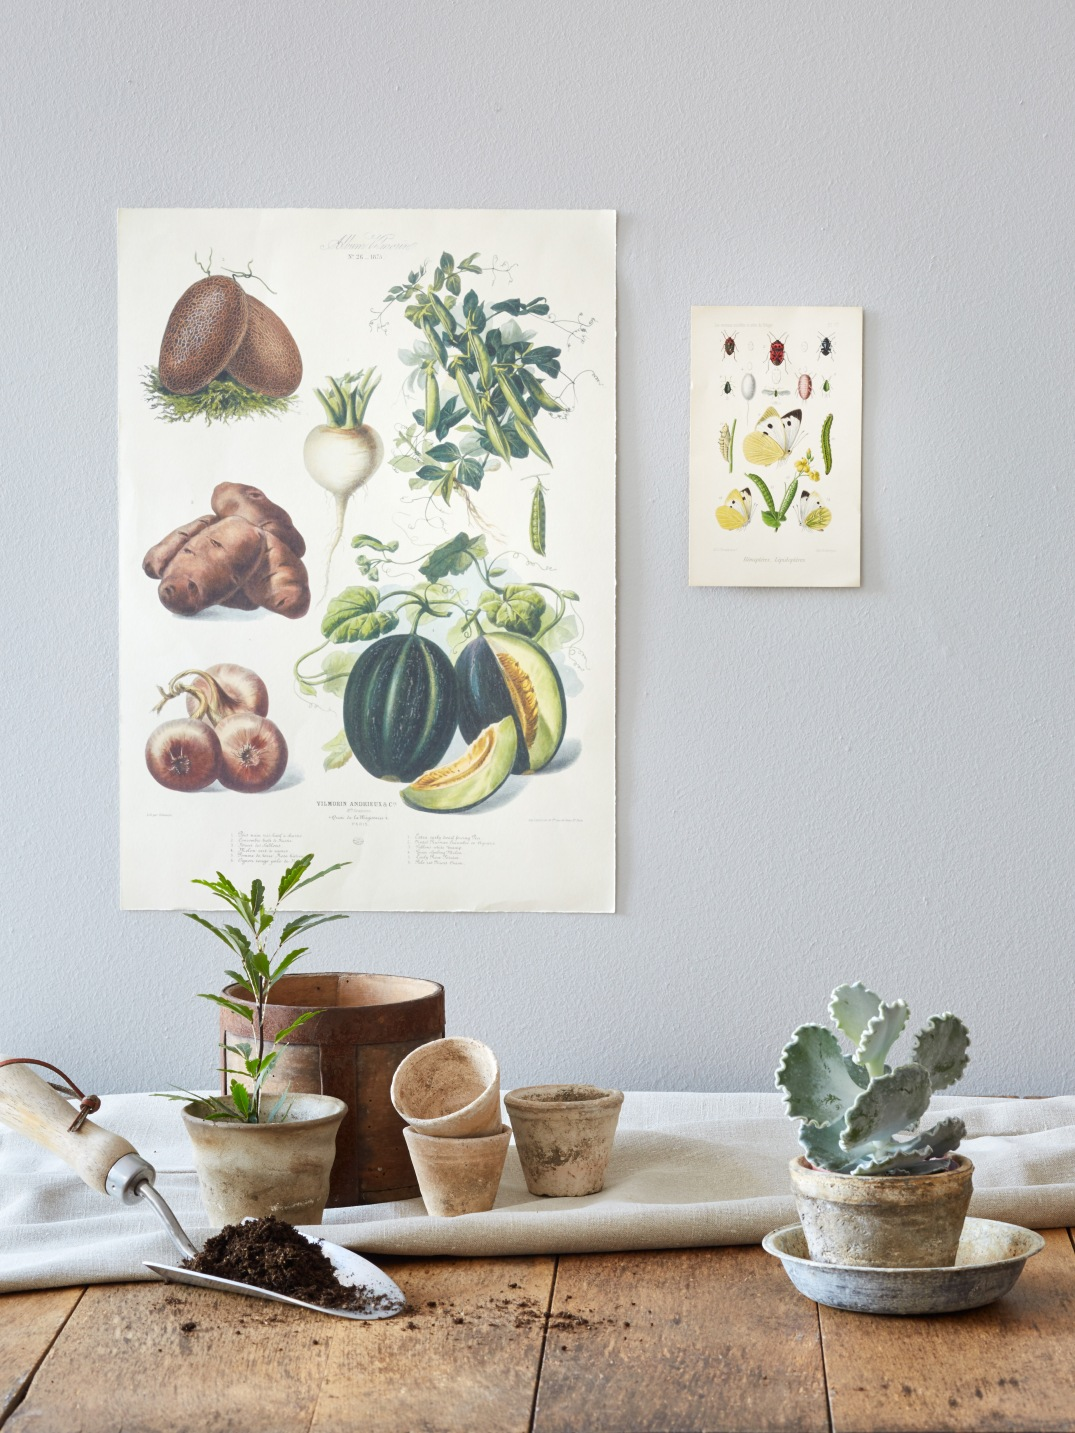 rustic table with antique prints and plants